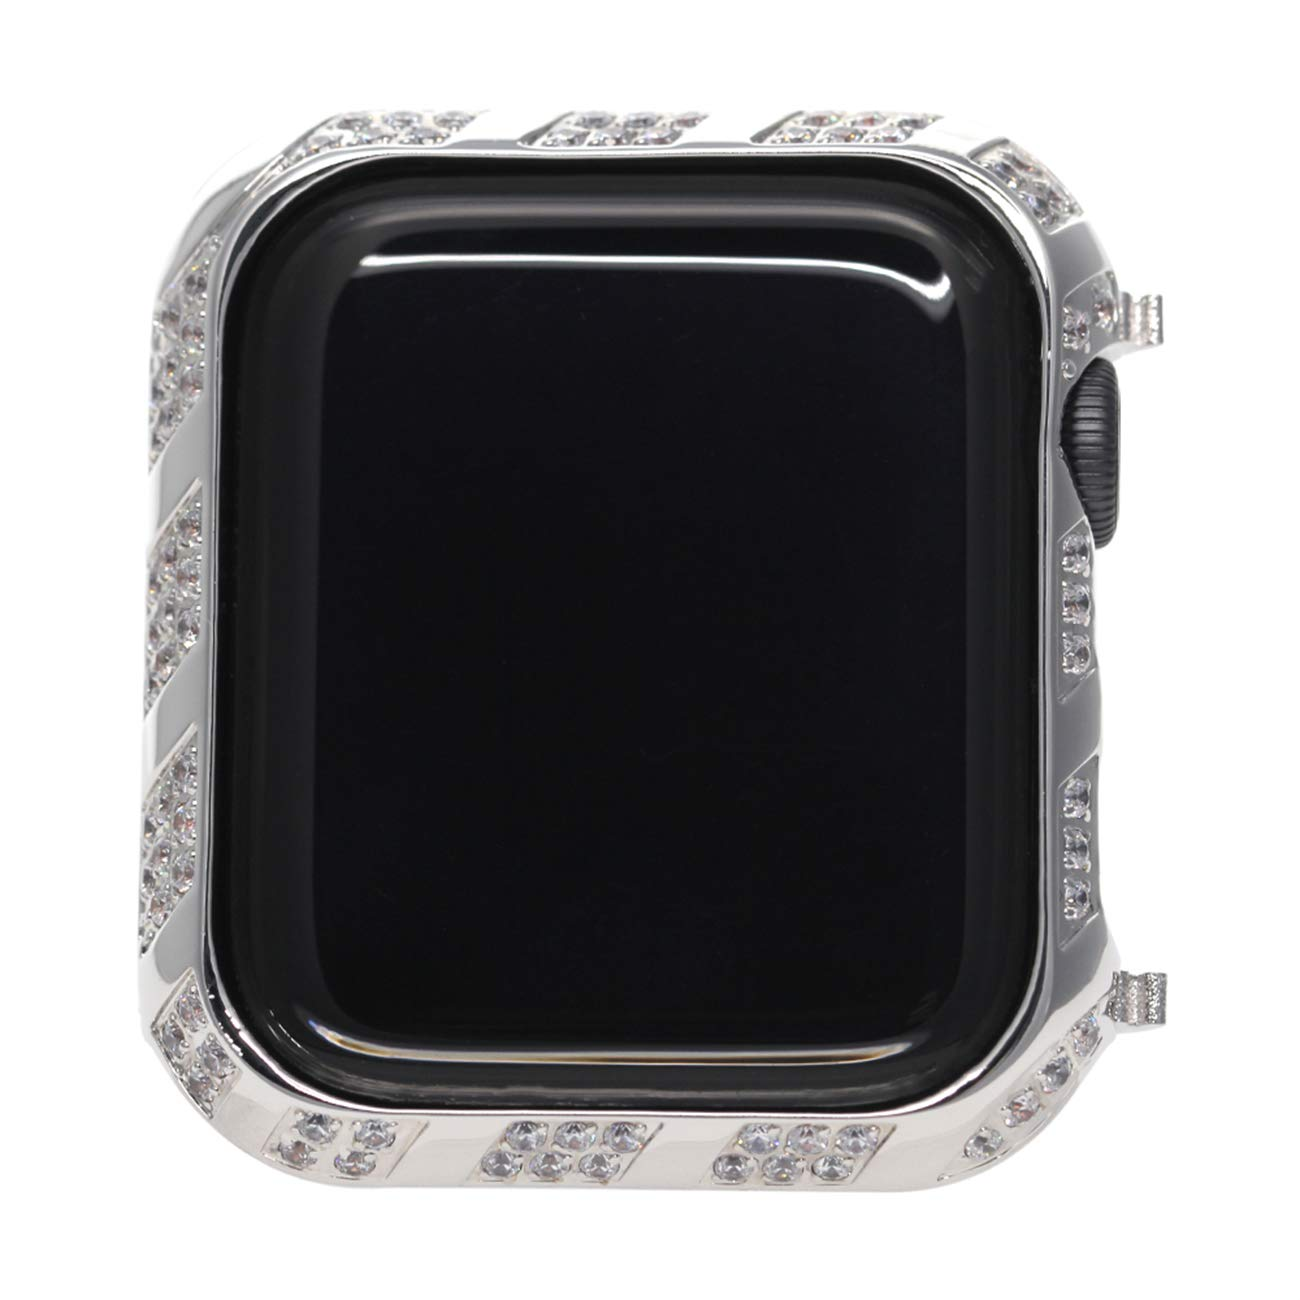 Callancity Sparkle Diamond Watch Face Bezel Plated Color Protective Frame Compatible with Apple Watch Series 4 Case Cover 2019 White Crystals for Men/Women by Callancity